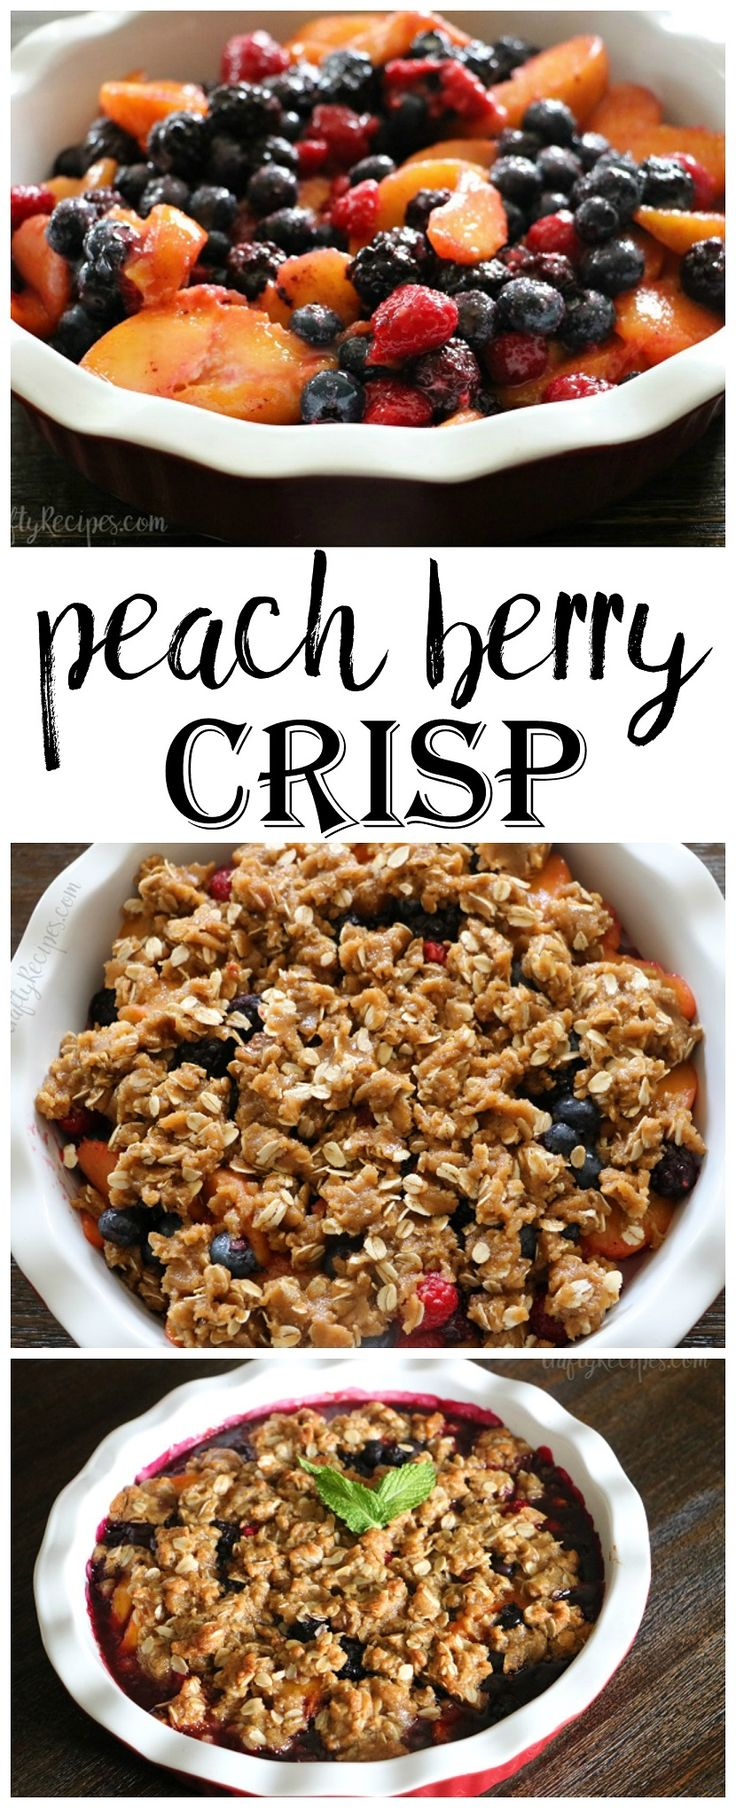 This peach berry crisp was amazing!! Perfect for a fresh summer dessert idea